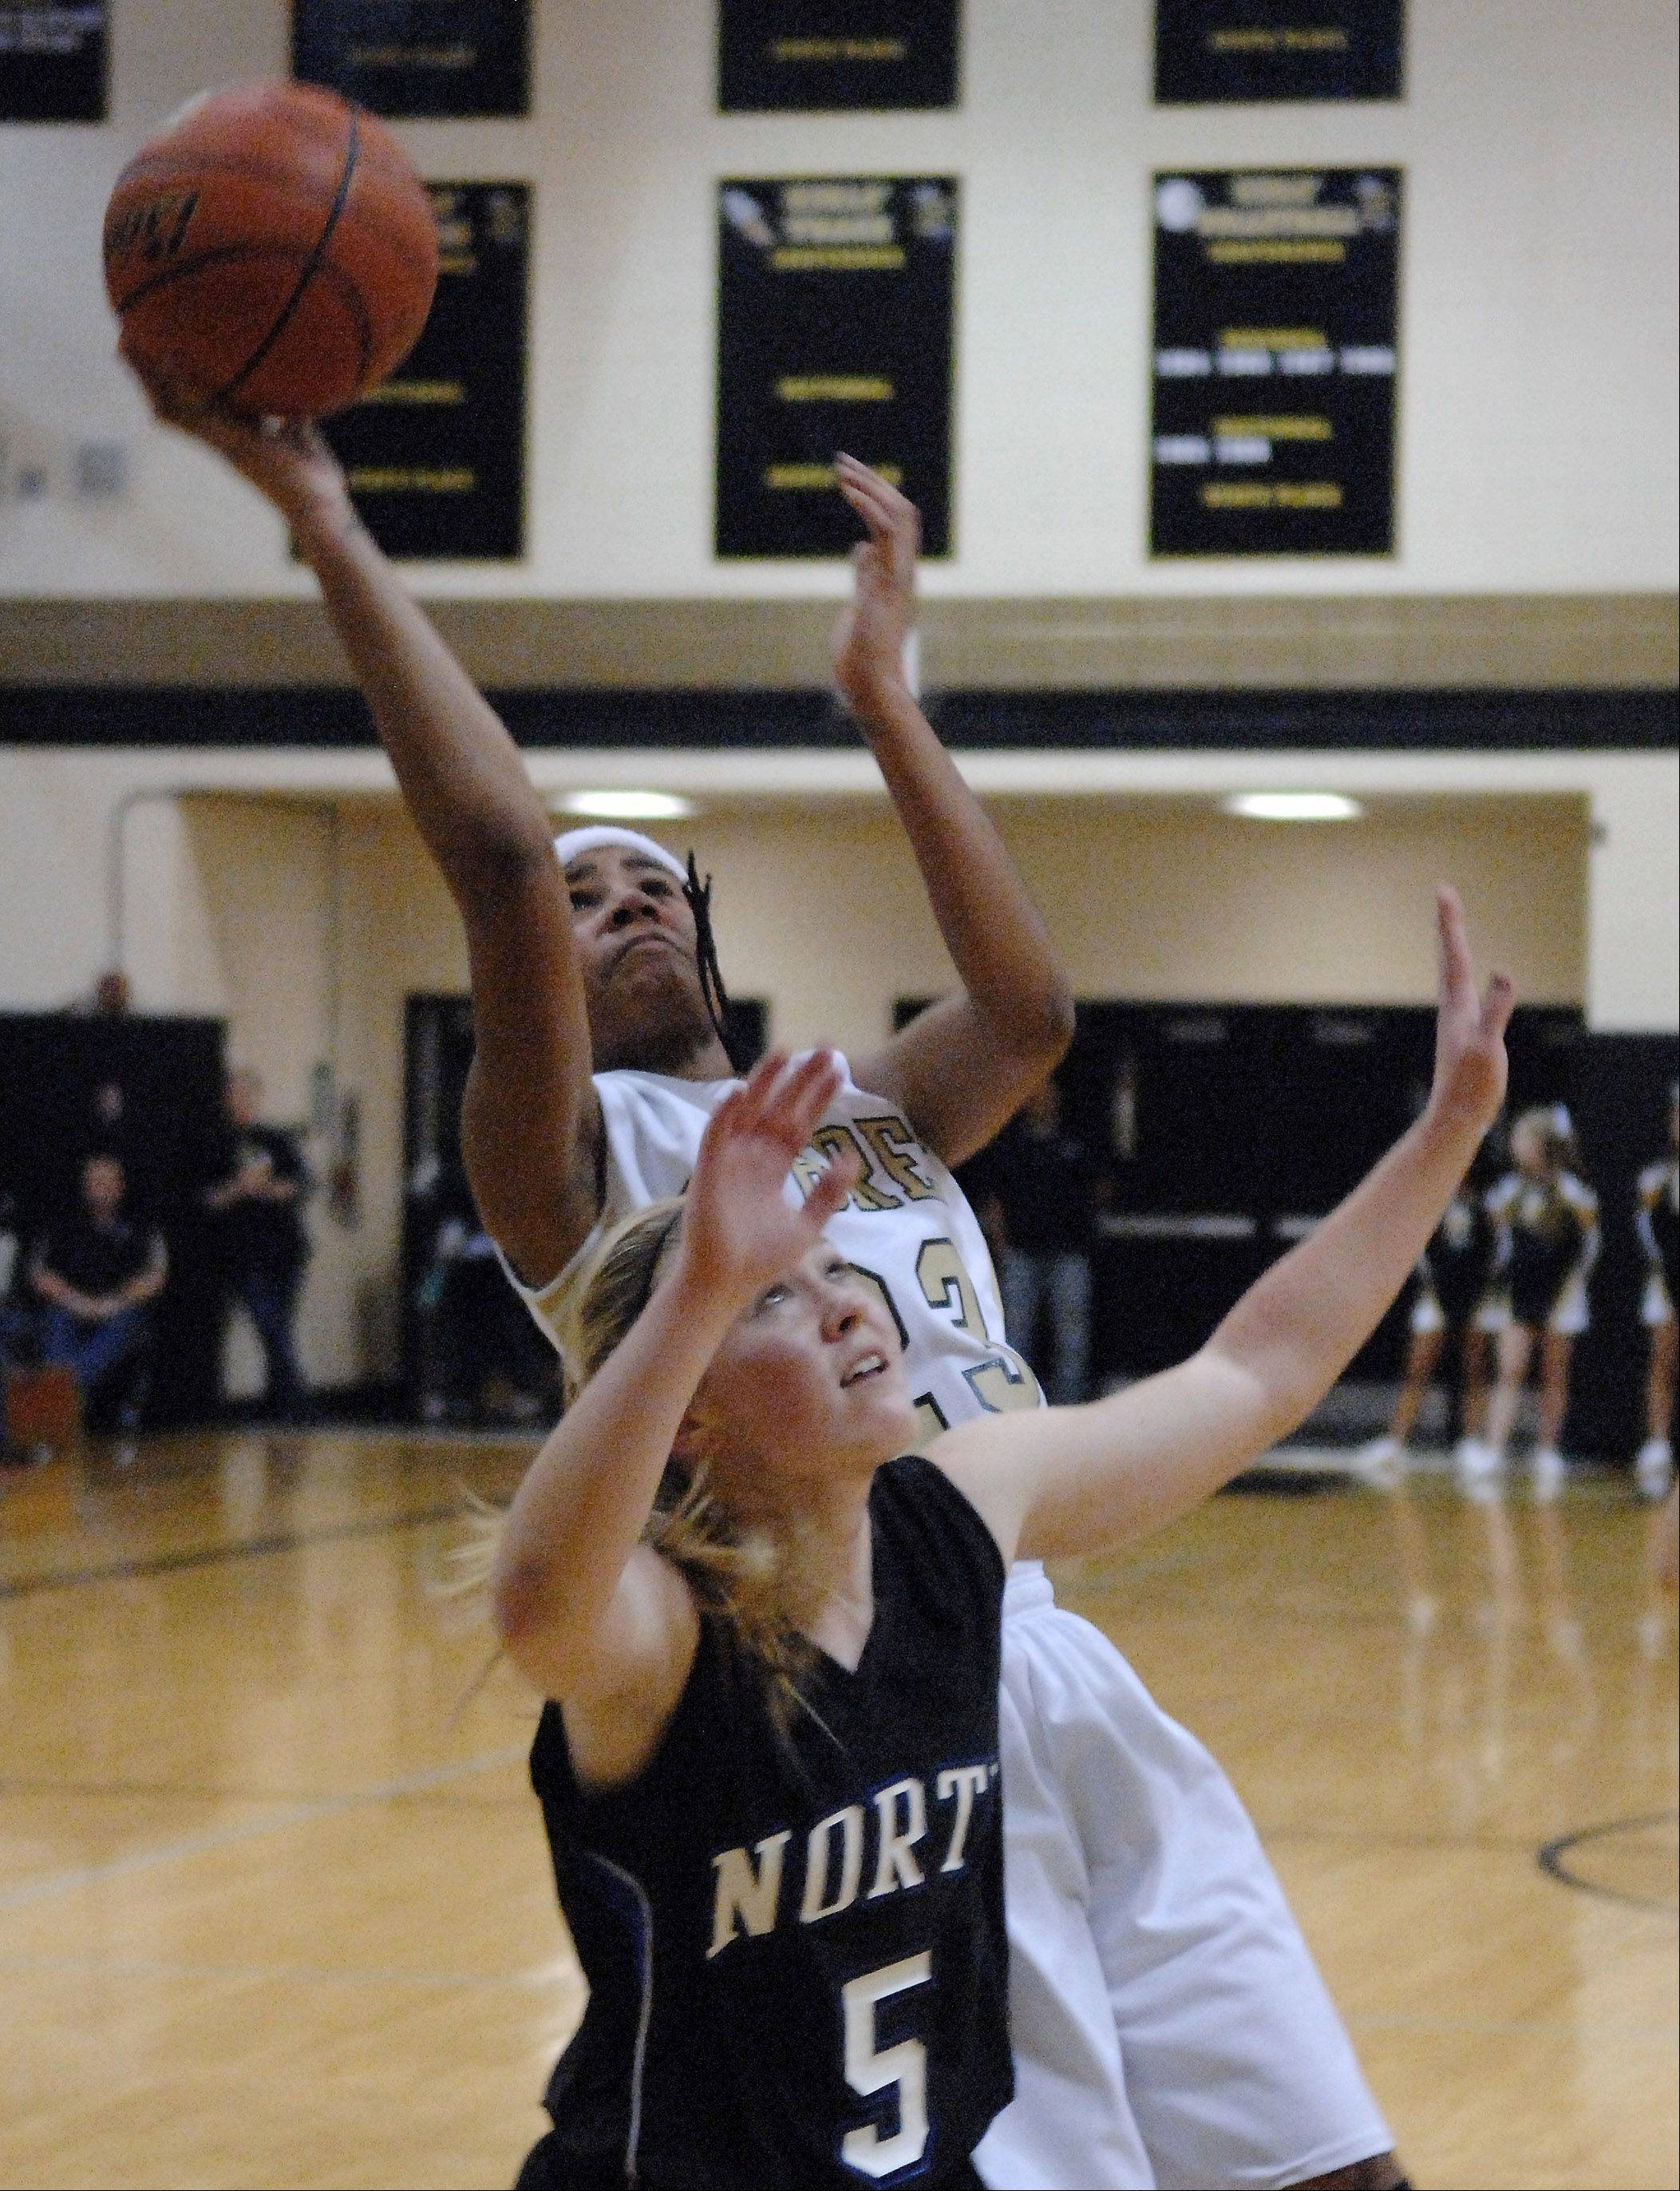 Streamwood�s Deja Moore puts up a shot over St. Charles North�s Natalie Winkates after grabbing an offensive rebound during Friday�s game at Streamwood.